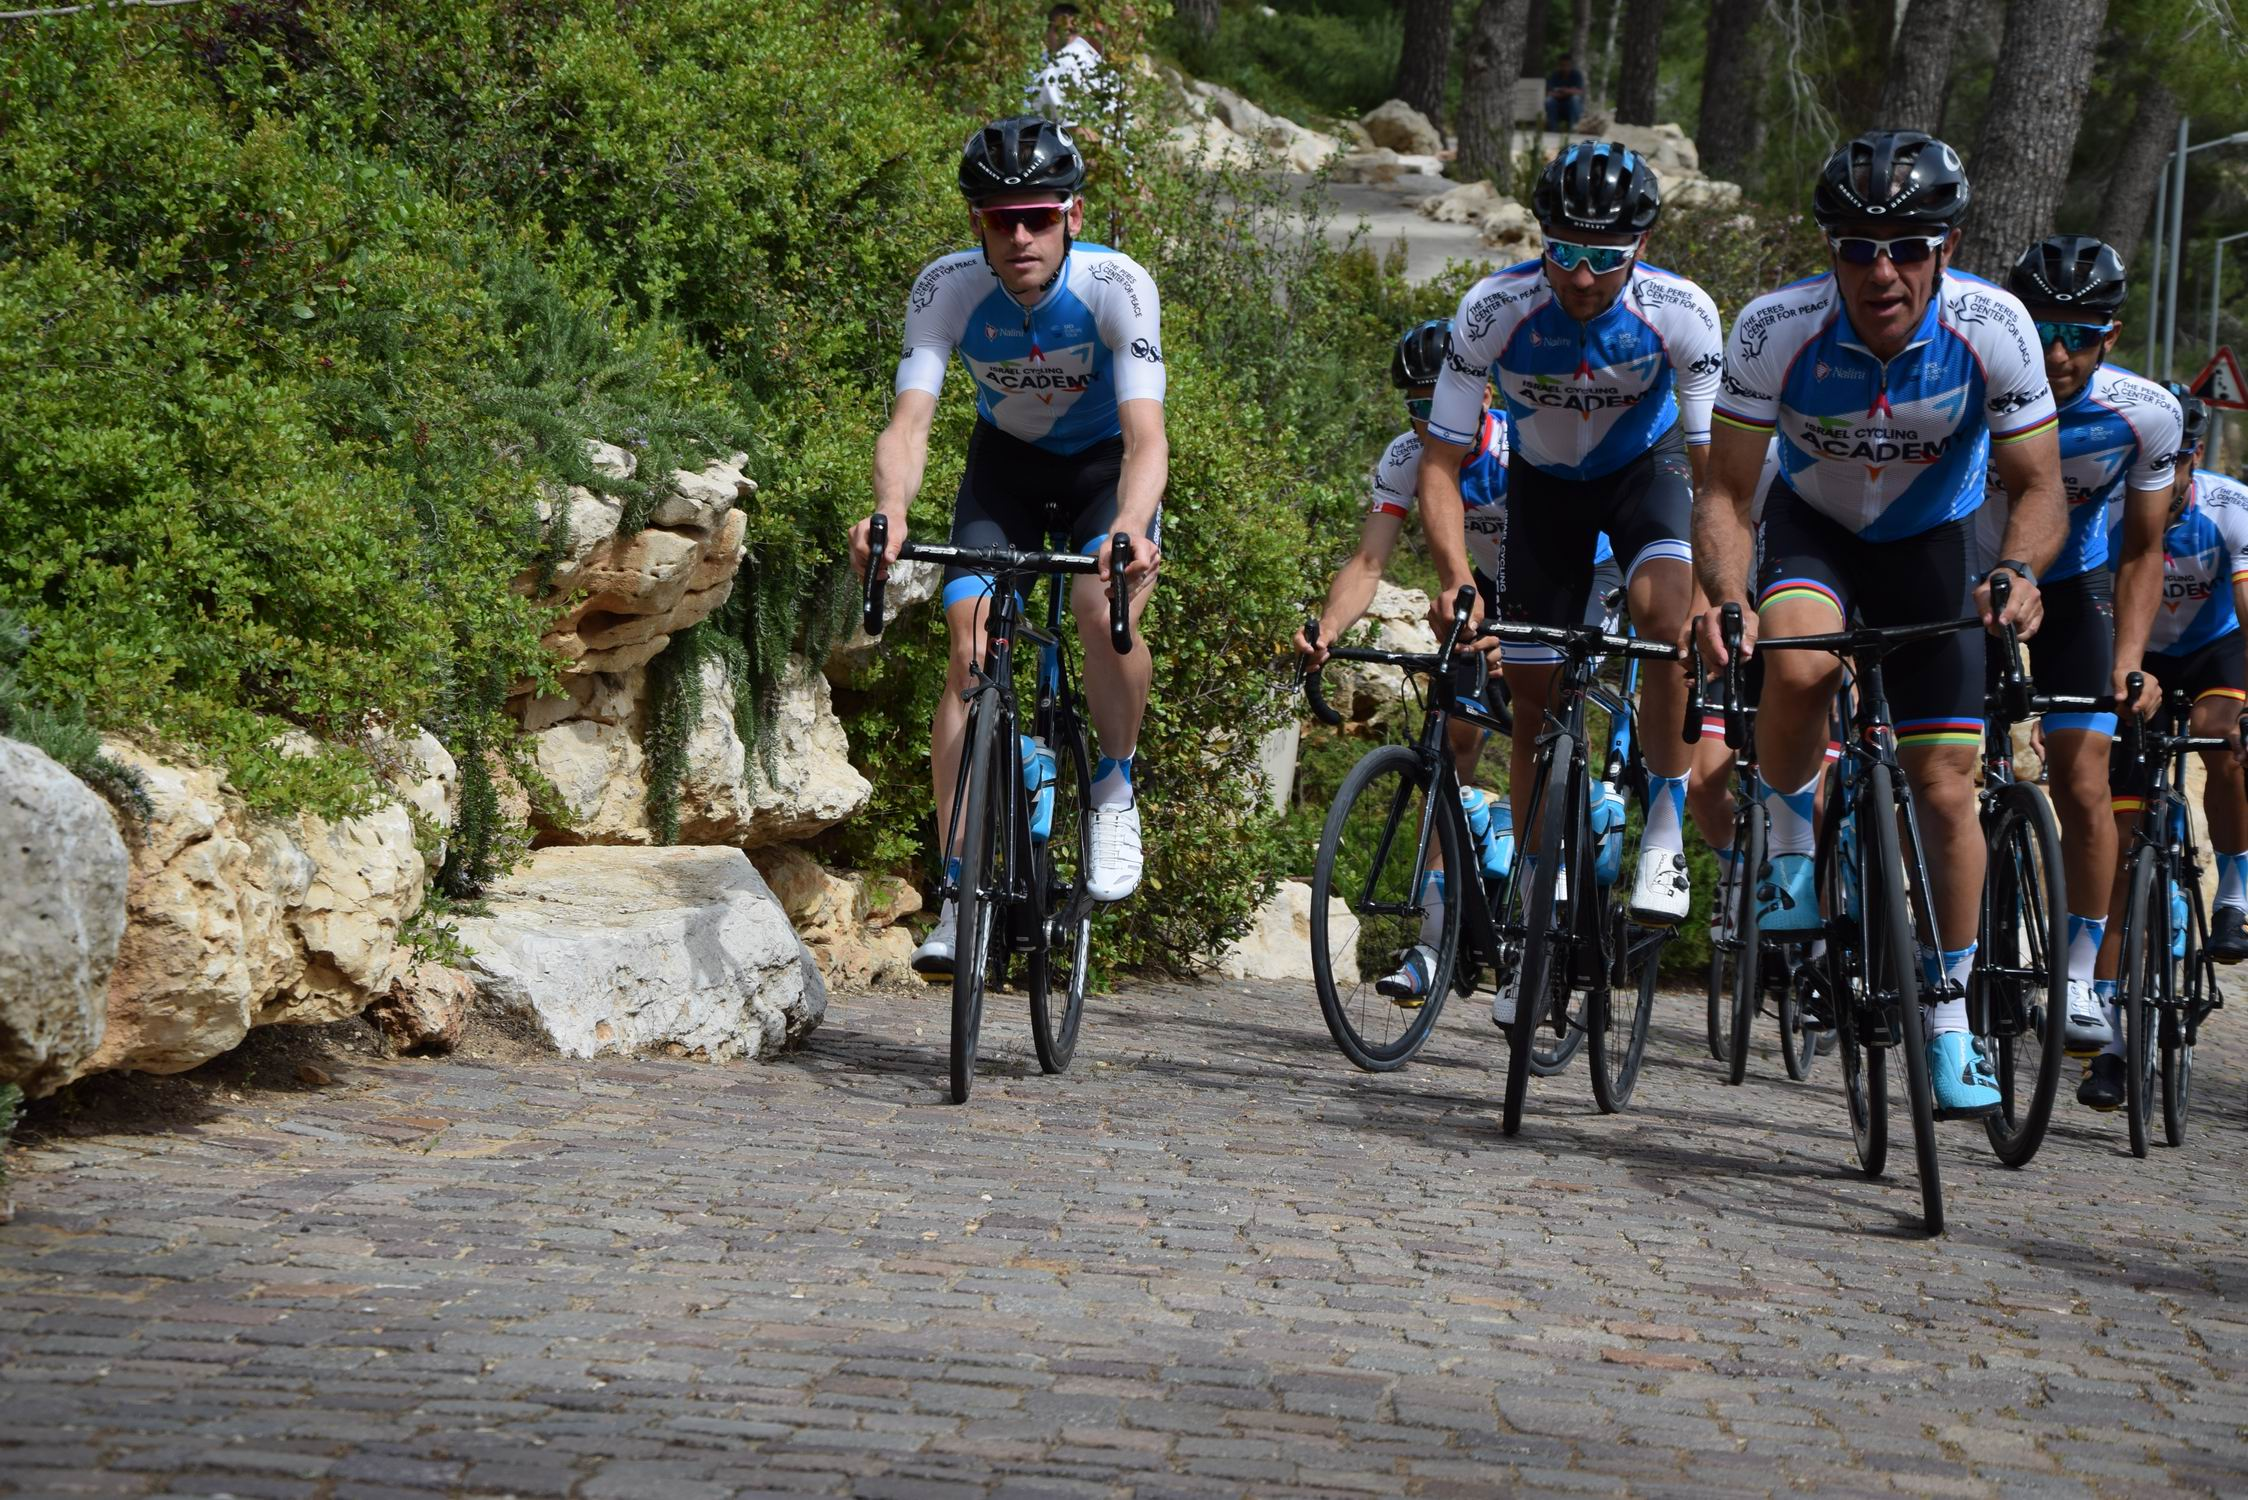 The Israel Academy Cyclists ended their Memorial Ride in Yad Vashem's Garden of the Righteous